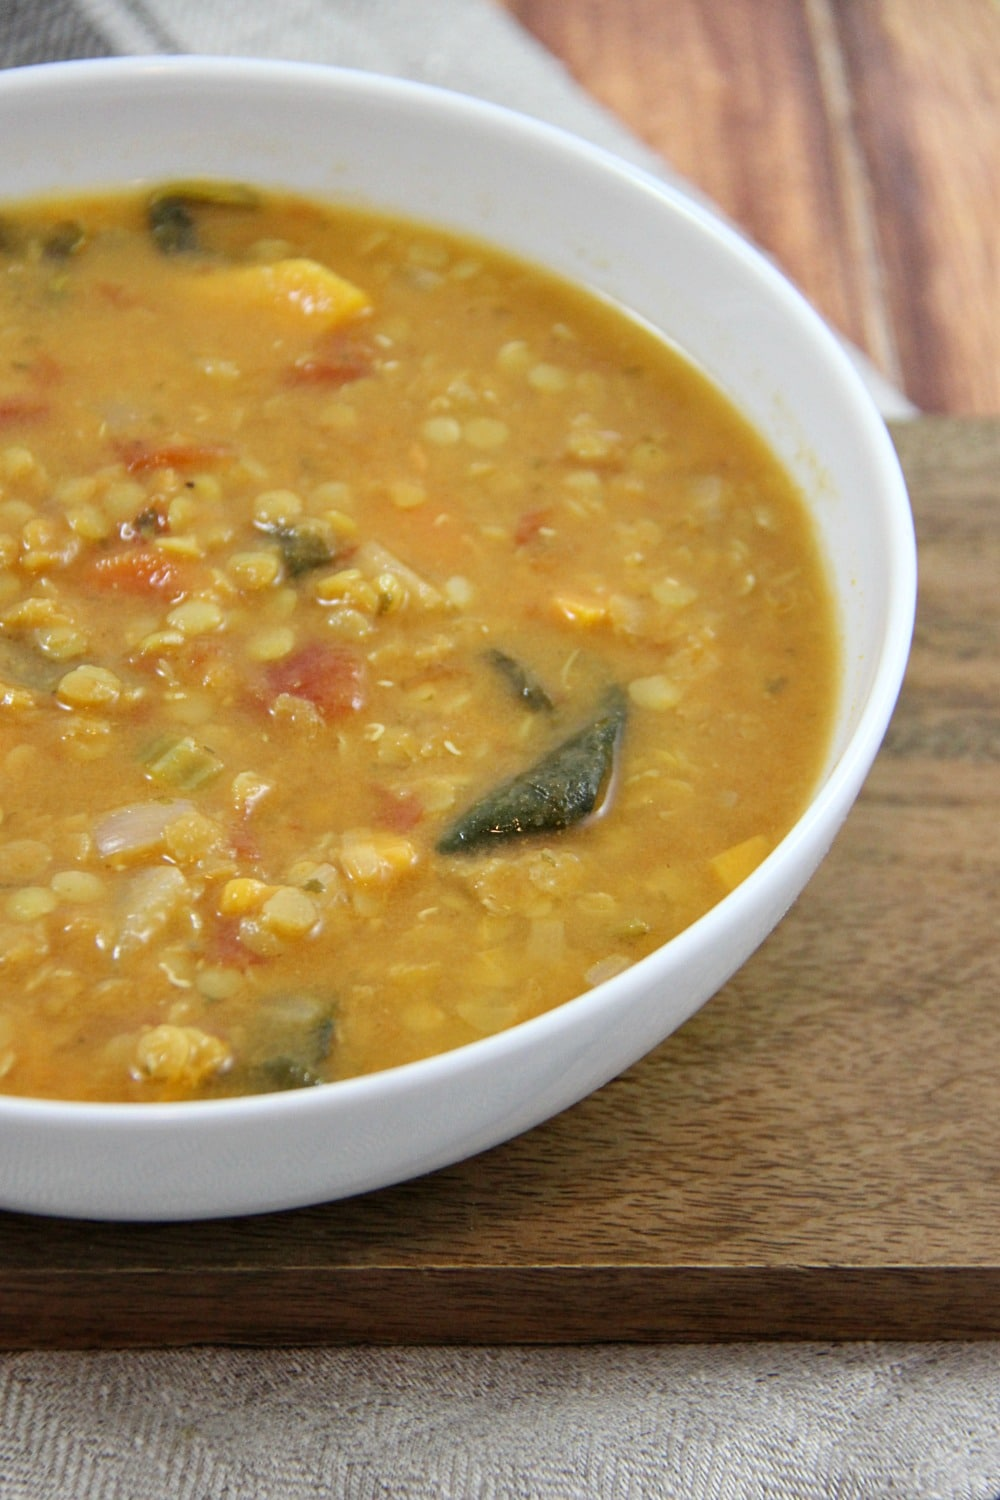 Slow Cooker Coconut Red Lentil and Carrot Soup Recipe (Vegan)